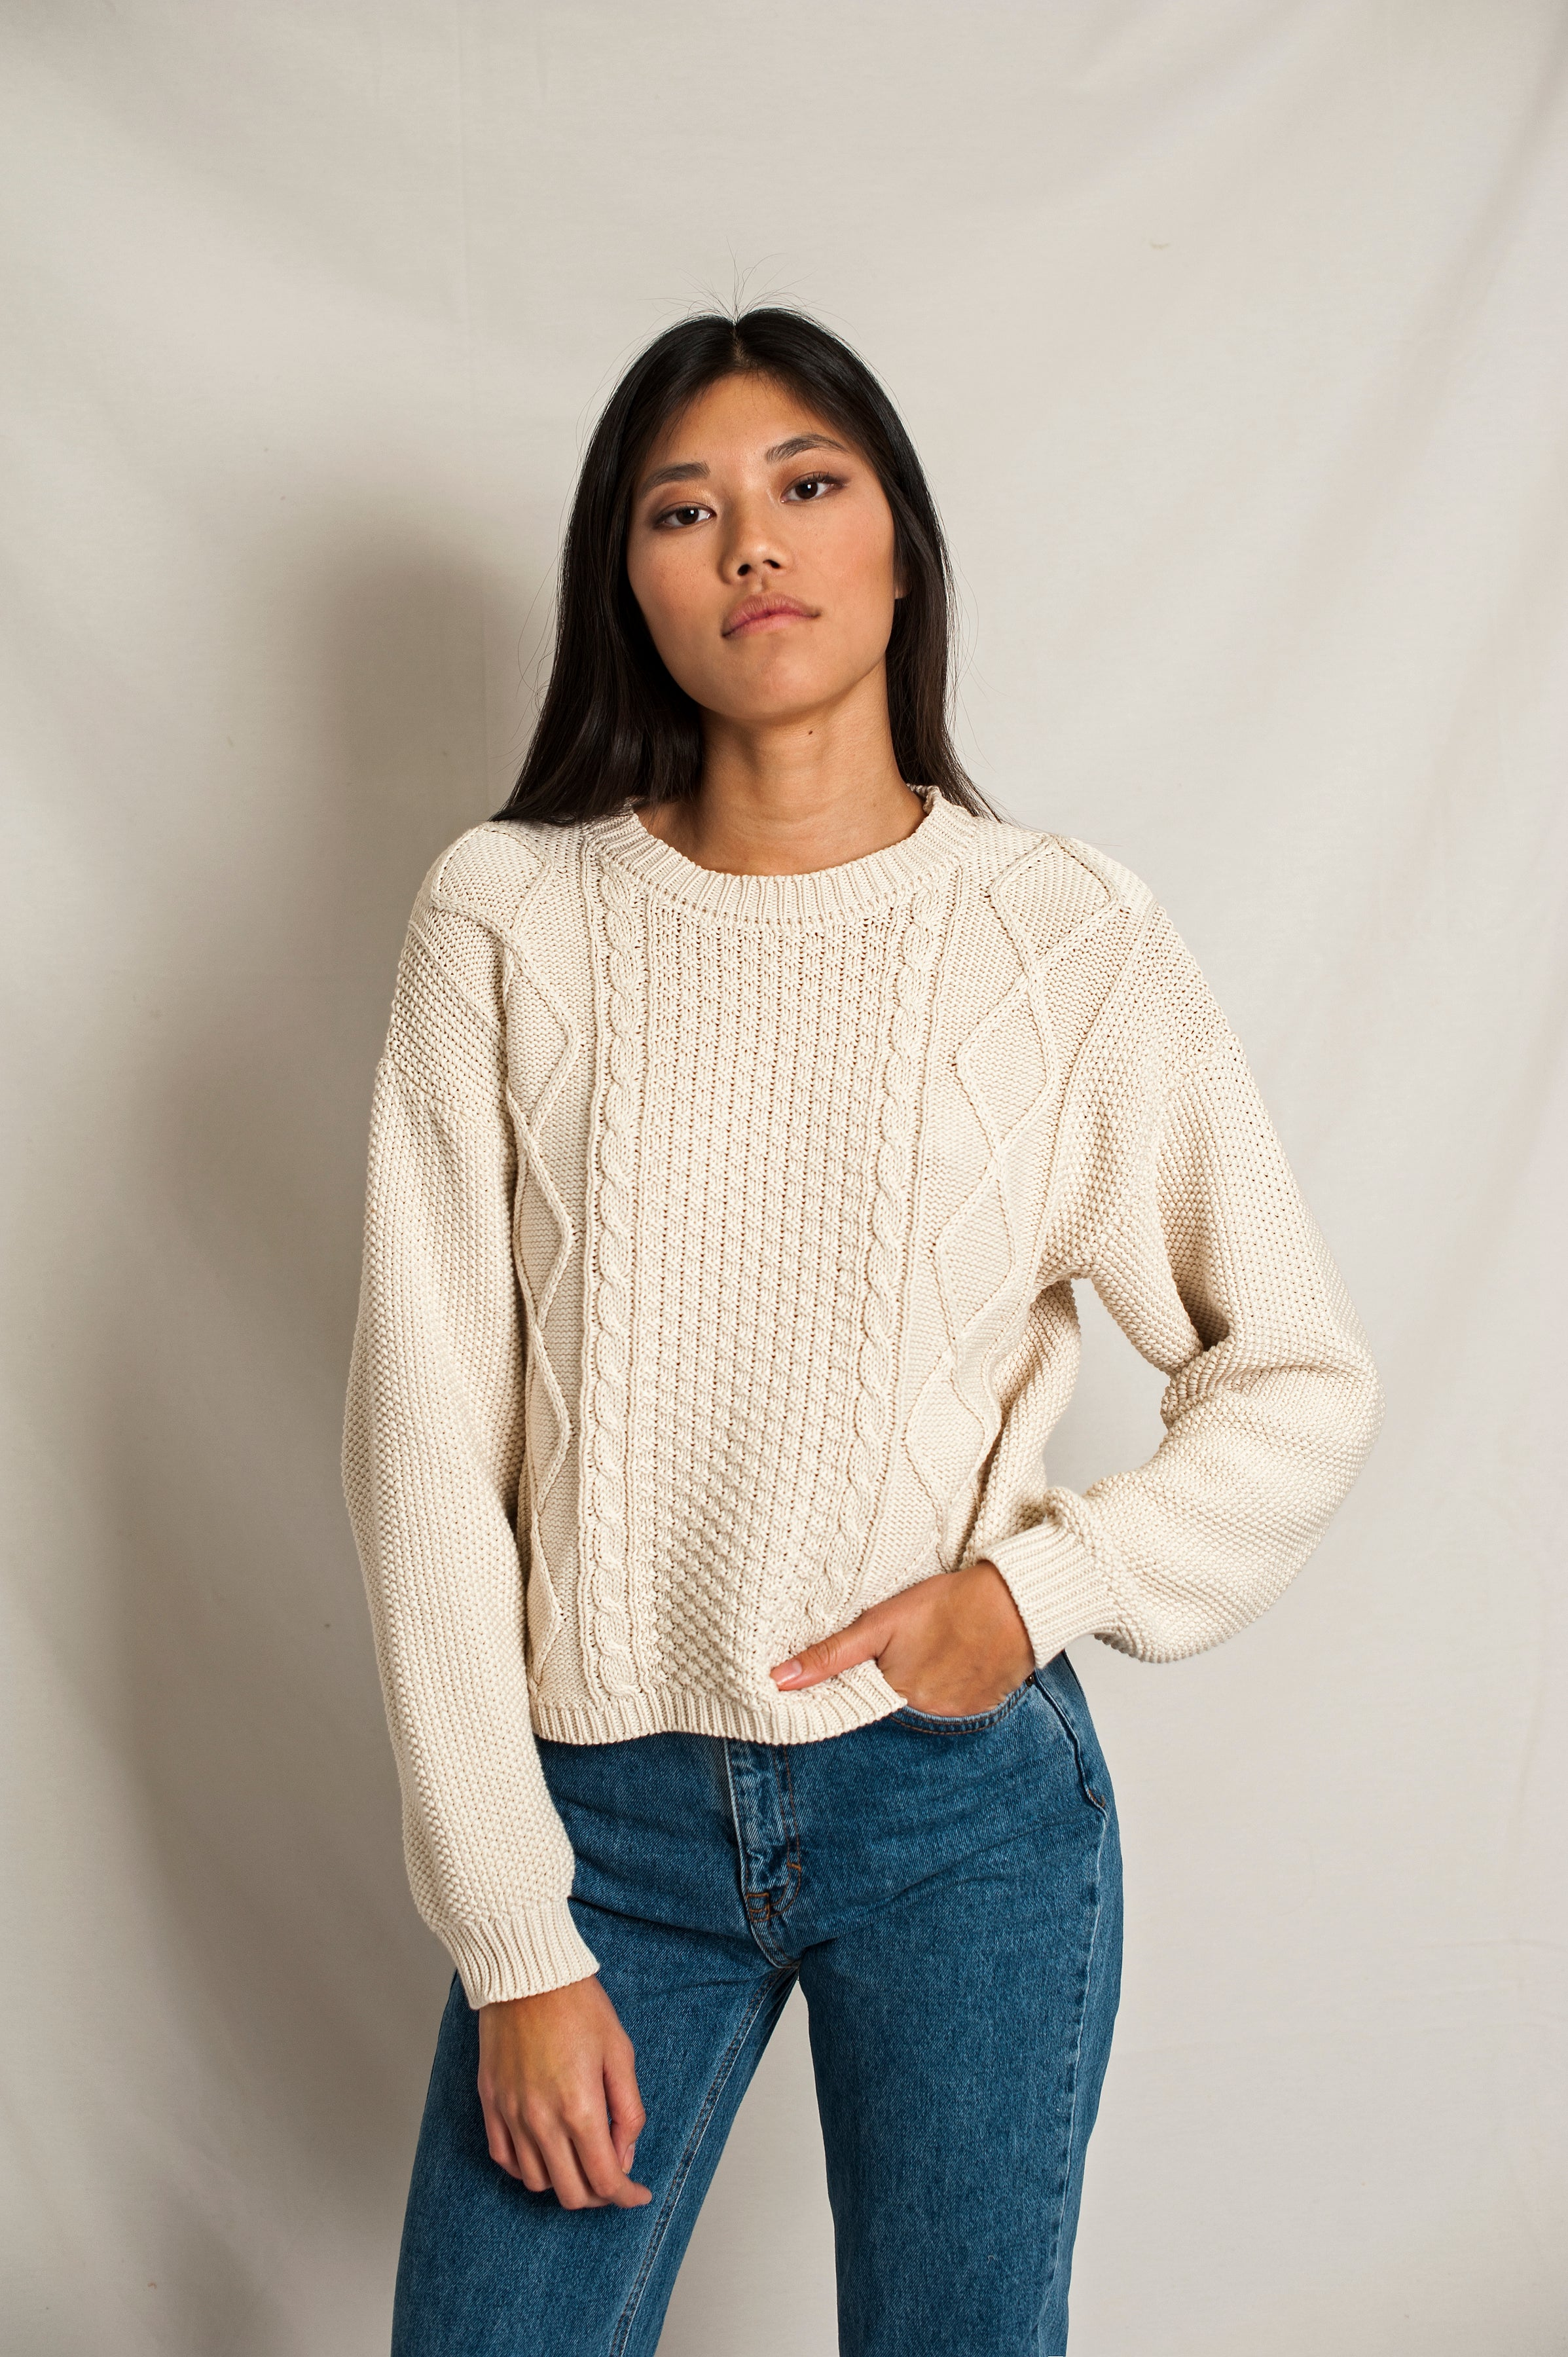 L'Envers - Paola Organic Cotton Sweater - GOTS certificated - Color Off-White - Font Picture